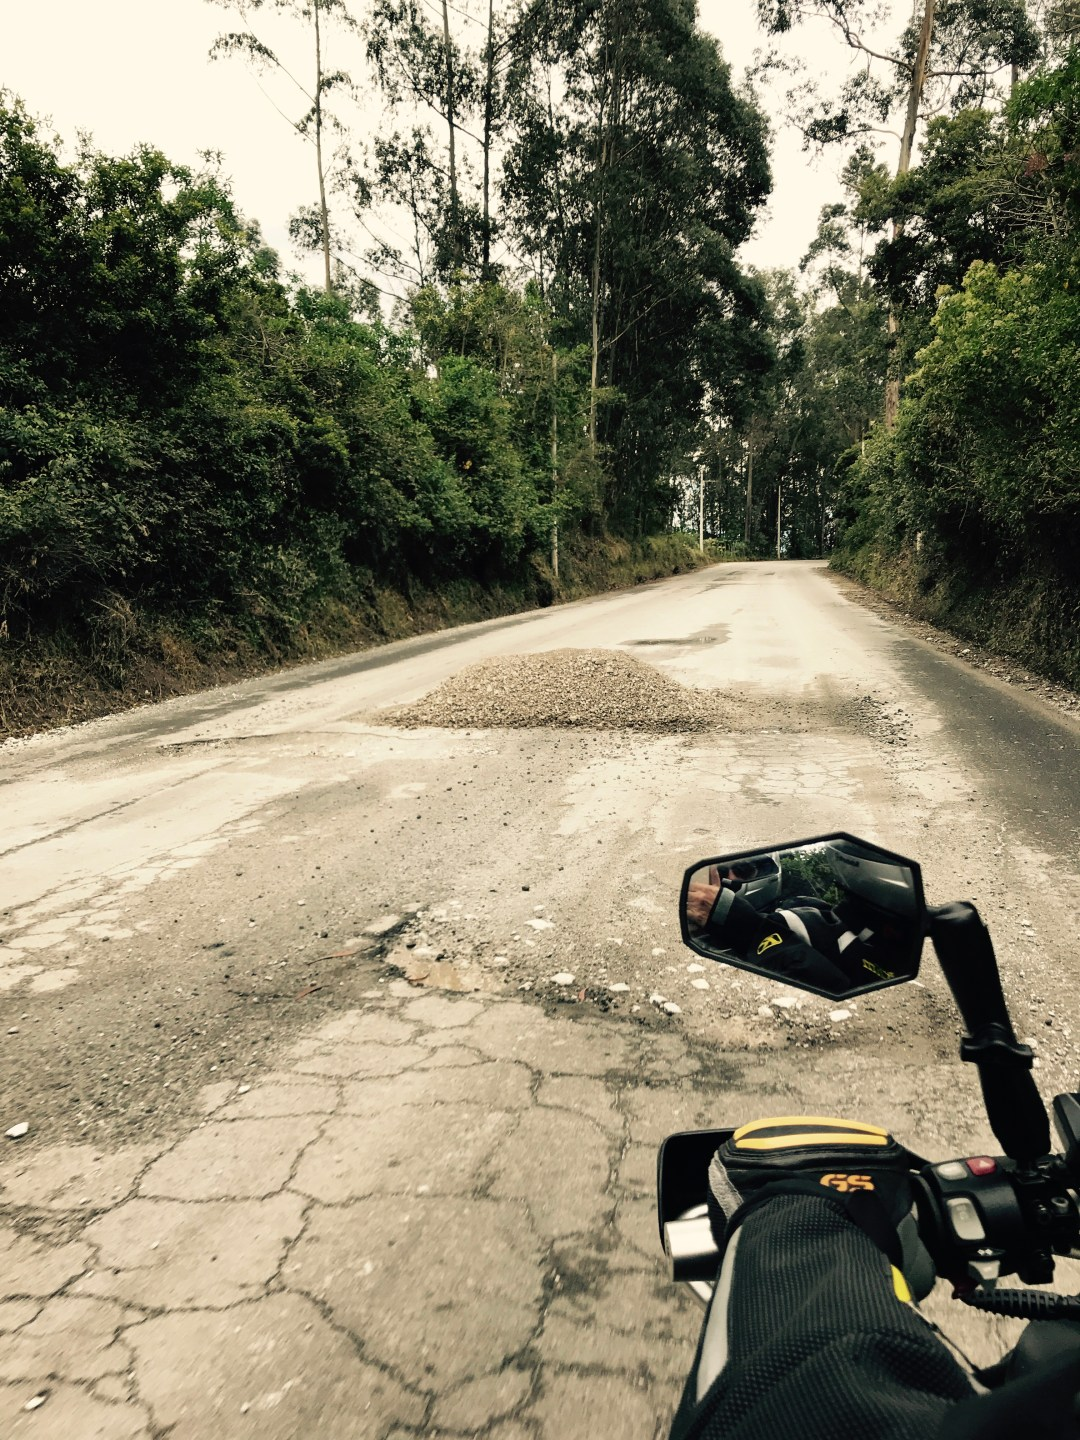 Ecuador road conditions